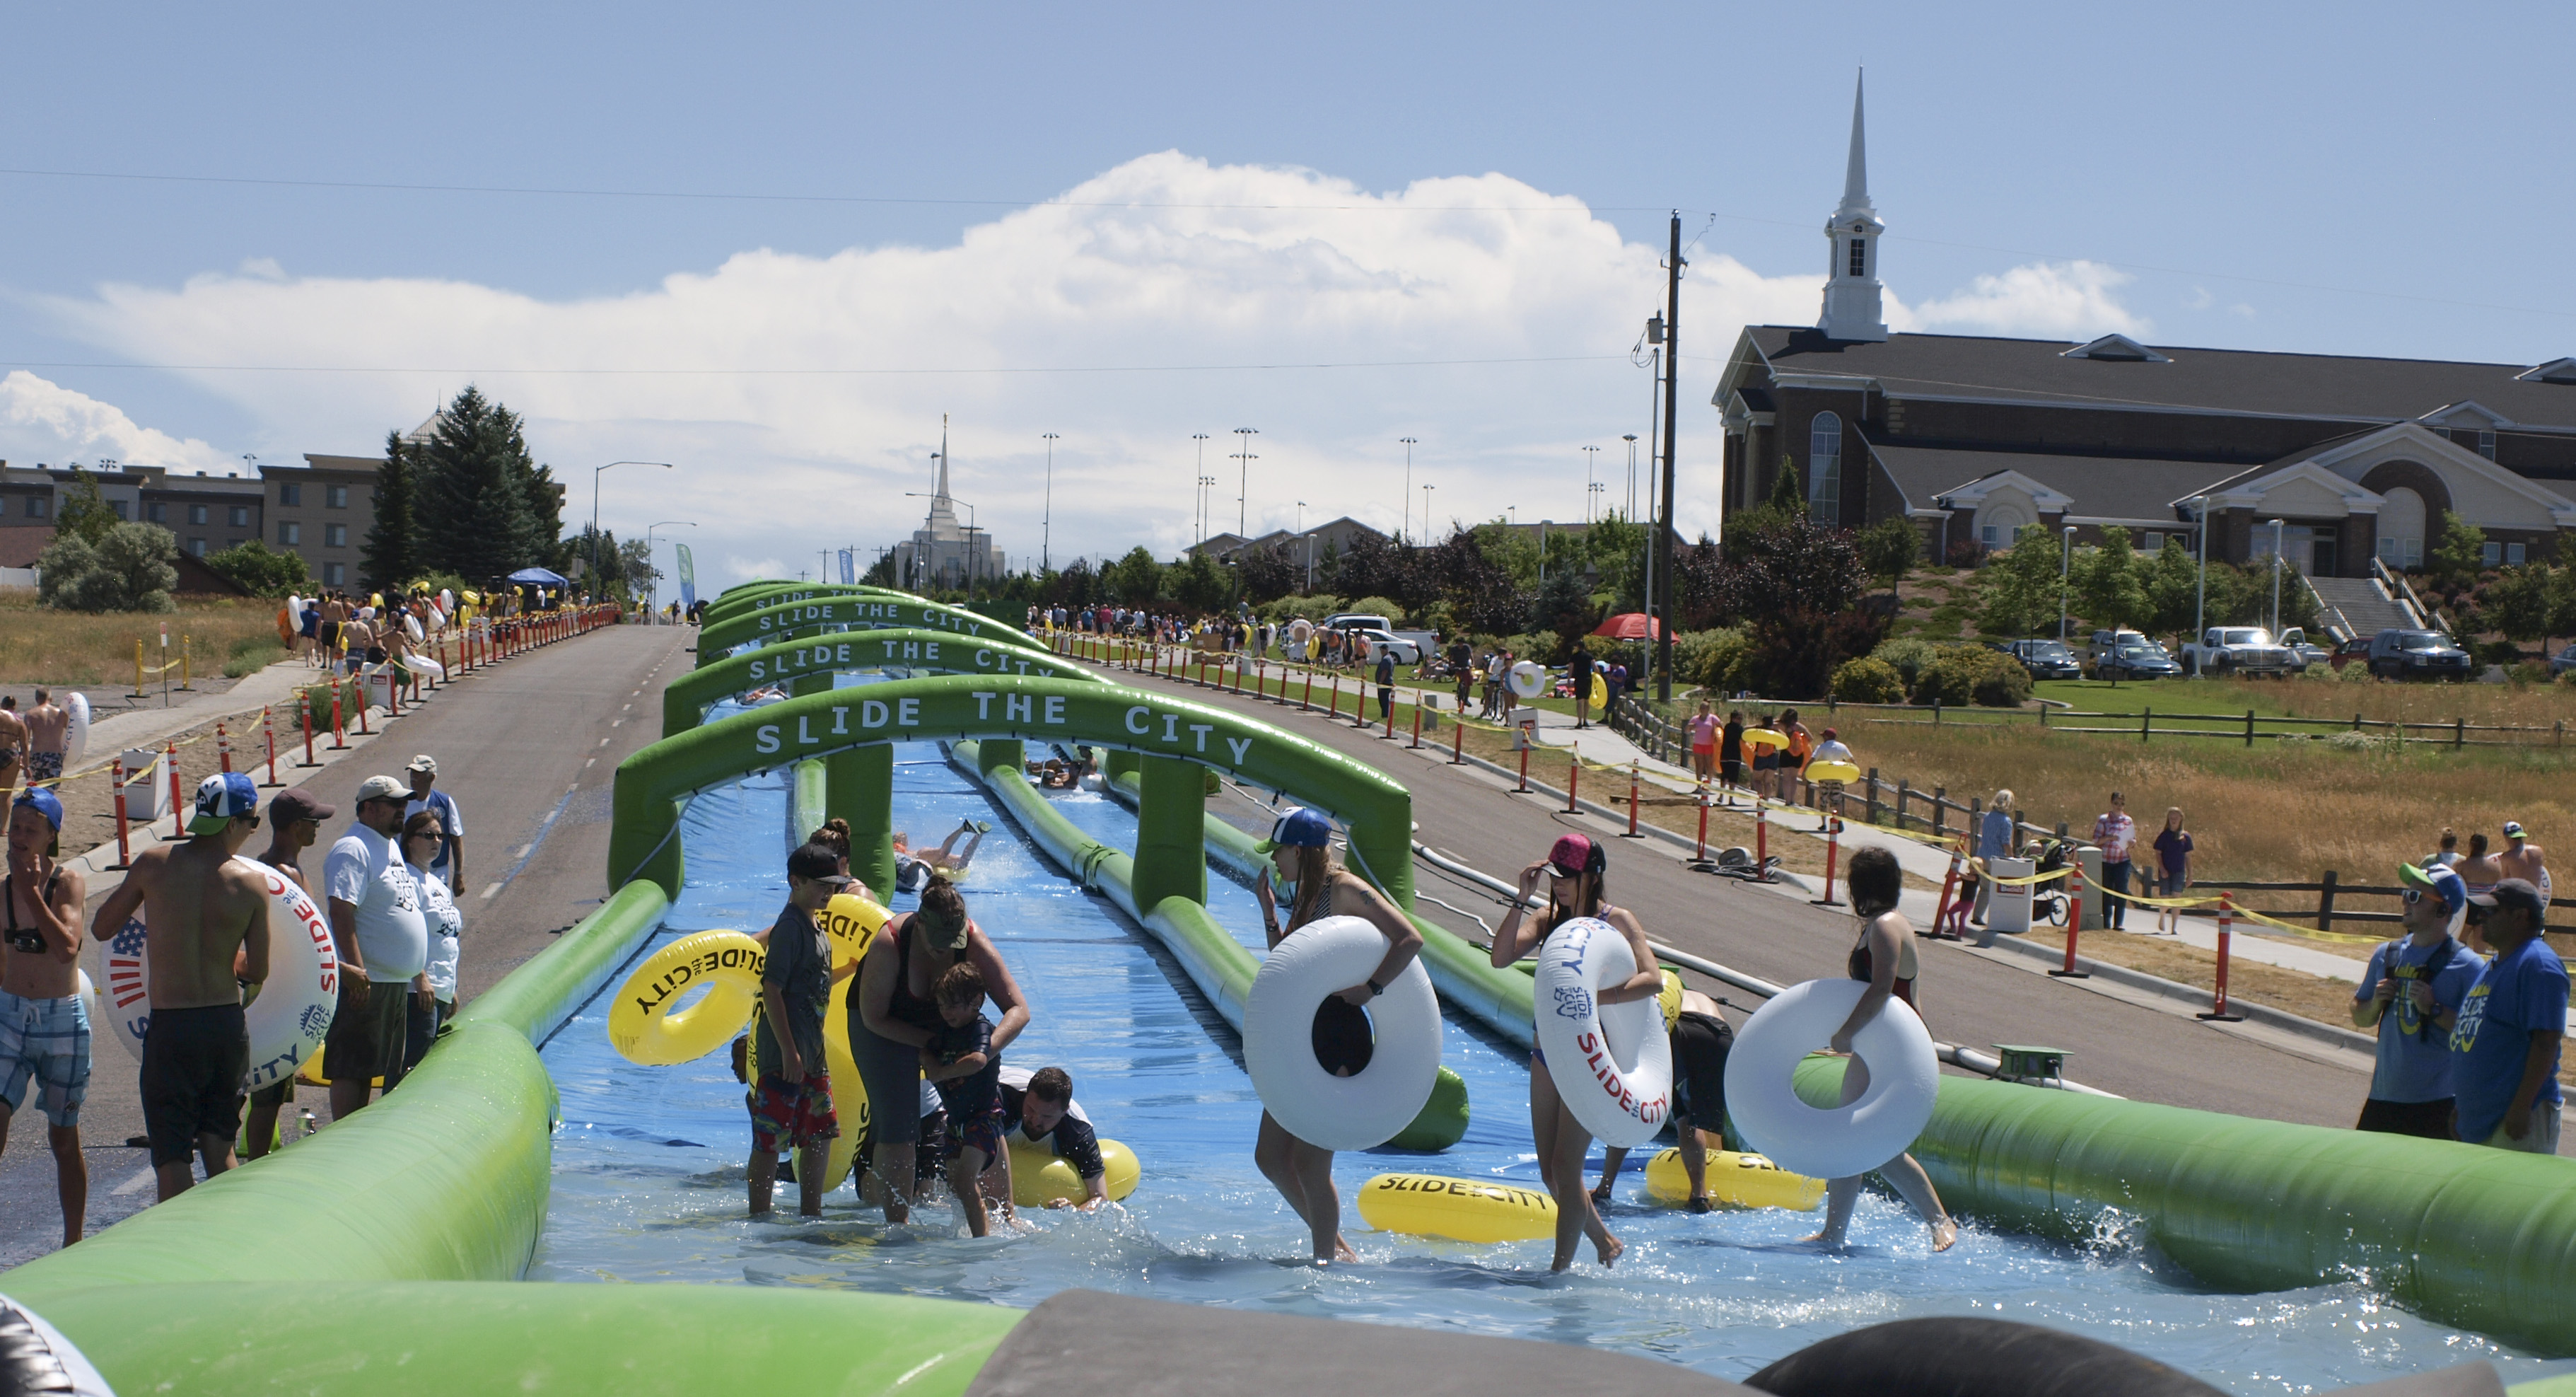 Record Breaking Slip and Slide comes to Rexburg